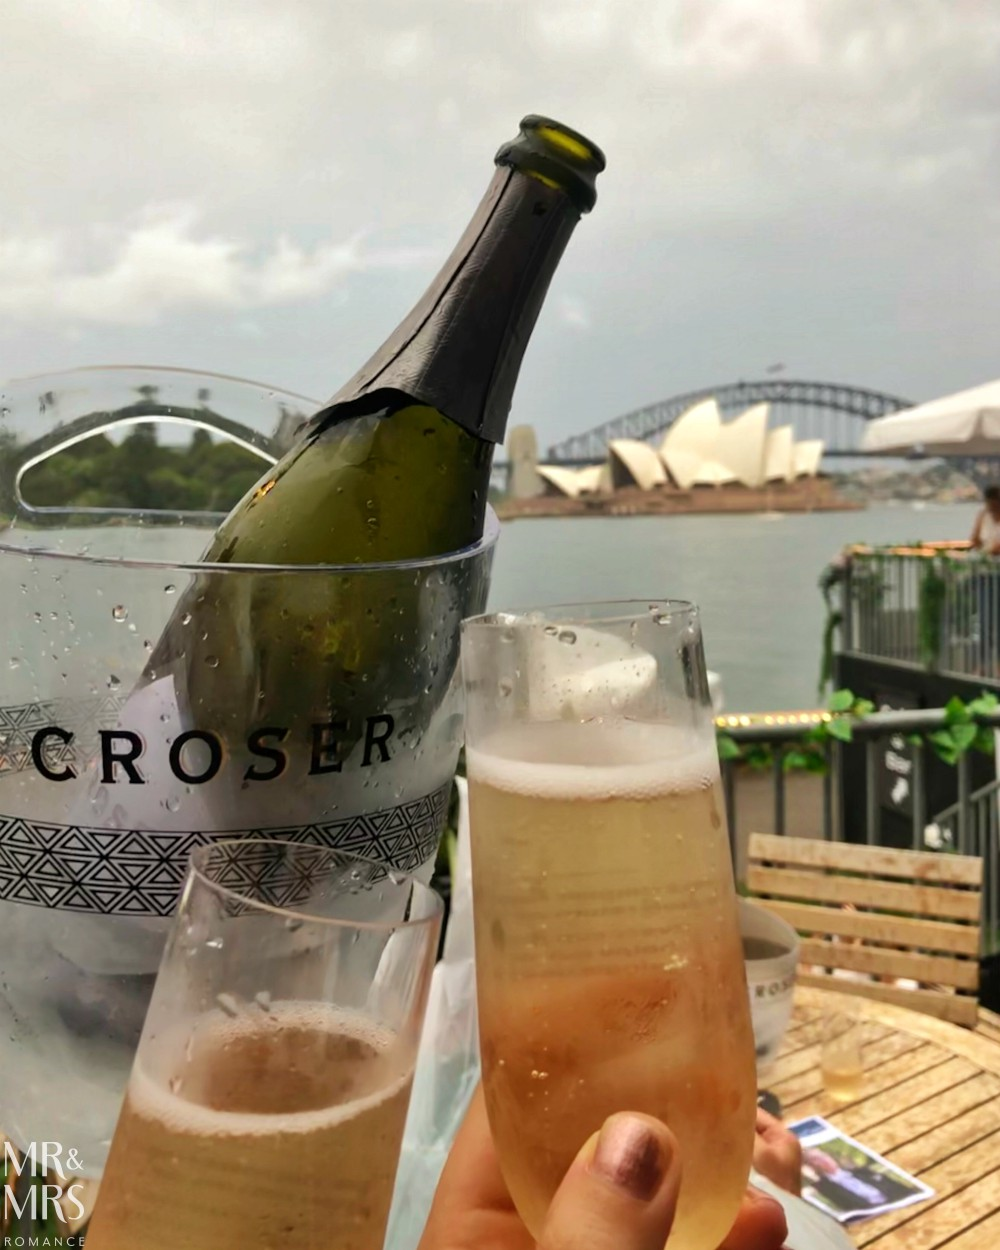 Croser at St George Open Air Cinema Sydney - #CroserMoment